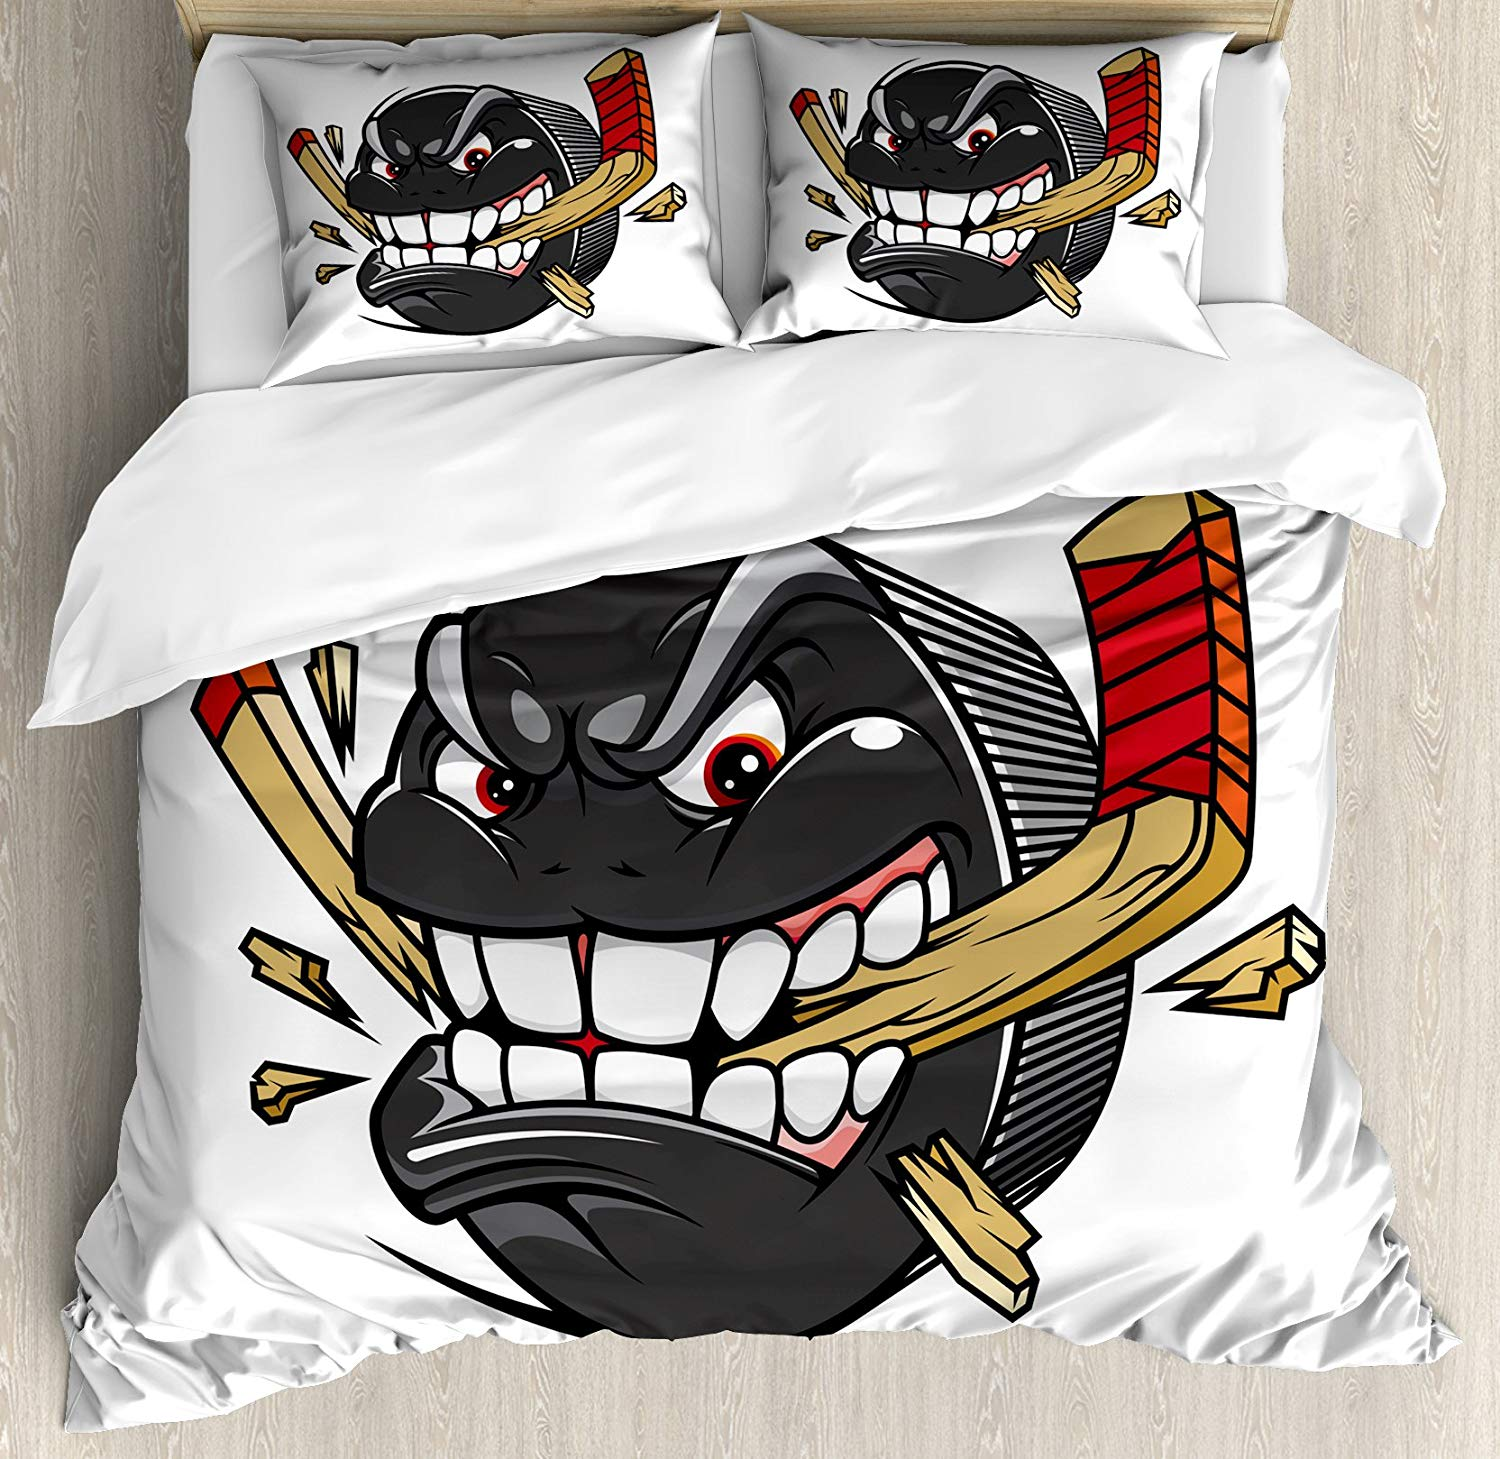 Sport Arena Photo Fans Print Hockey Quilted Bedspread /& Pillow Shams Set